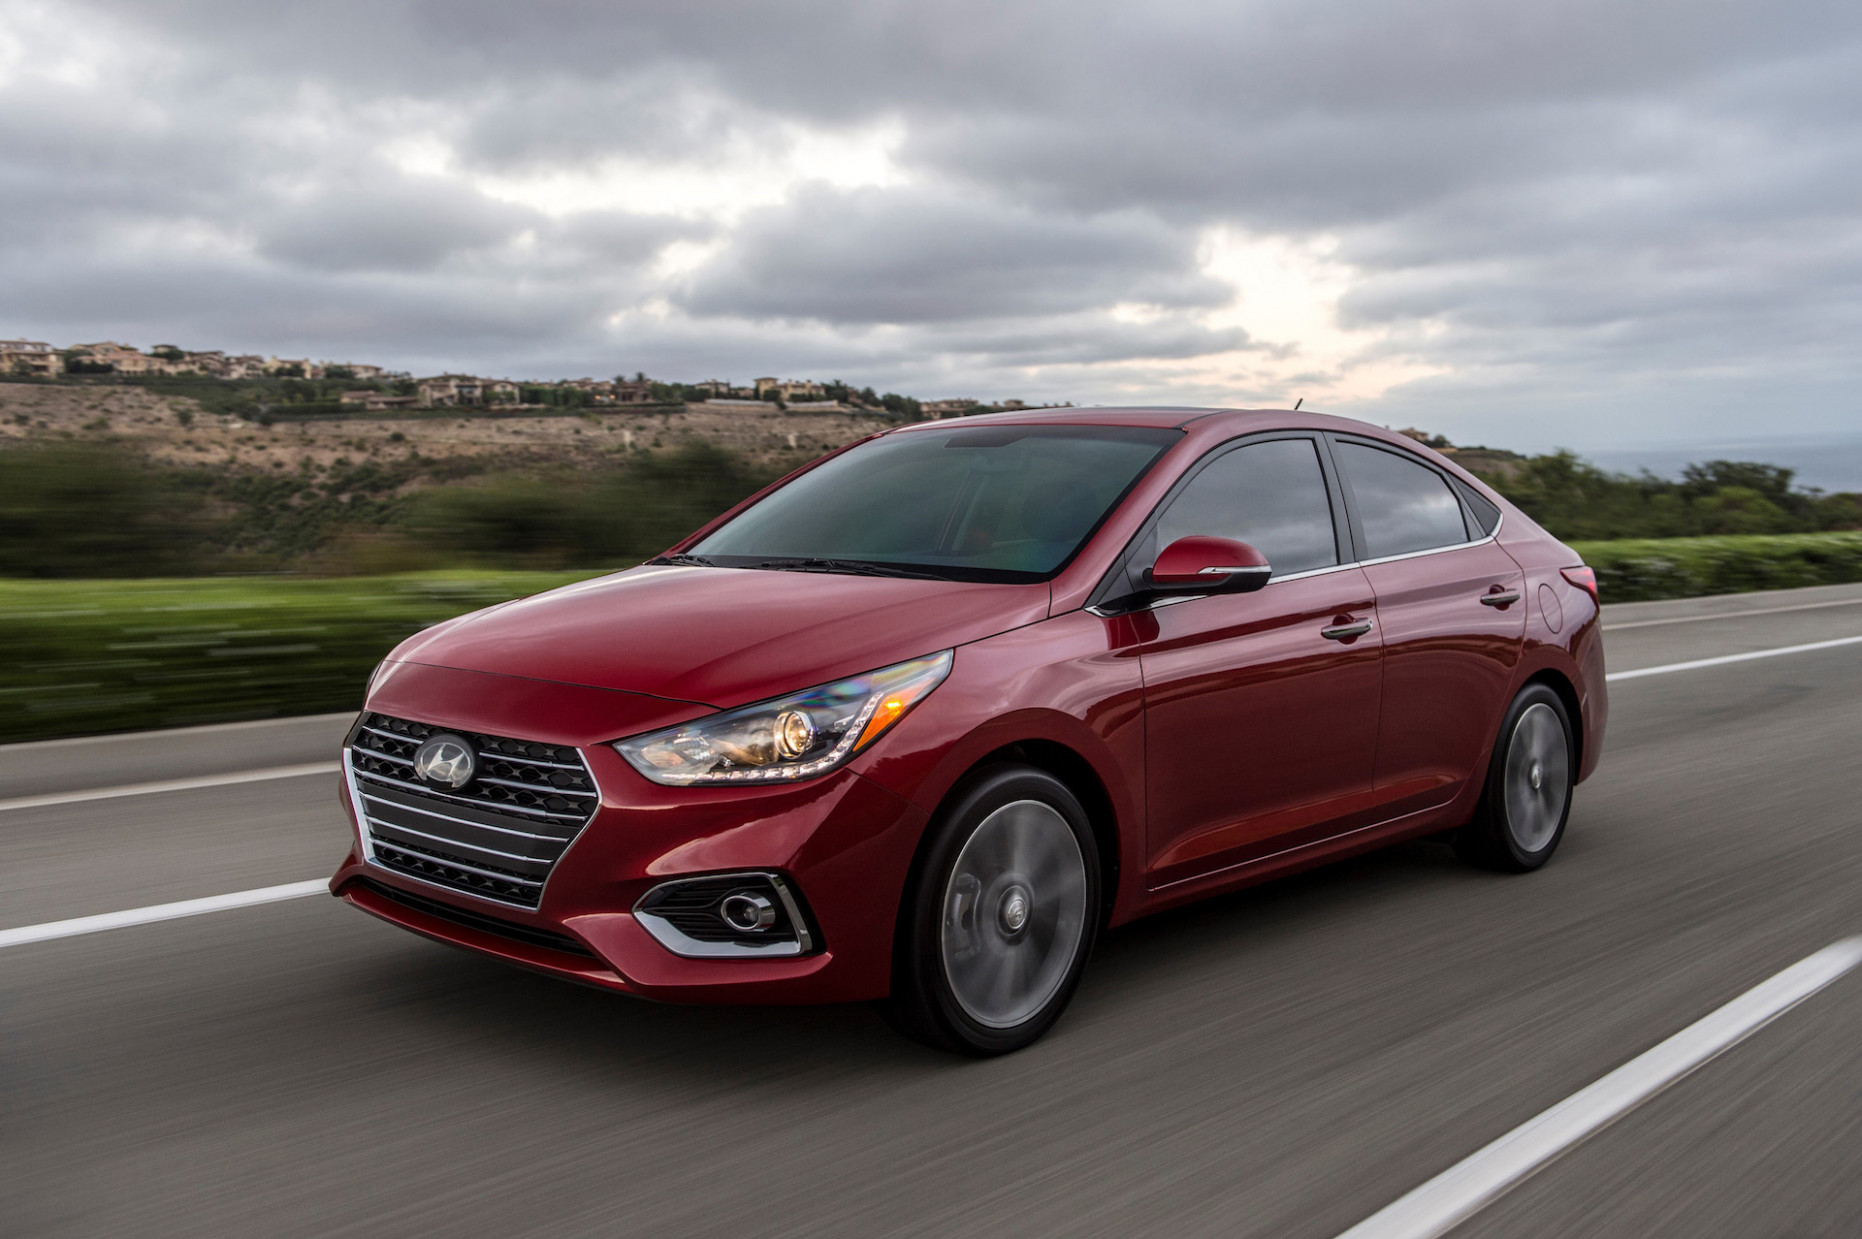 8 Hyundai Accent Review, Ratings, Specs, Prices, and Photos ...